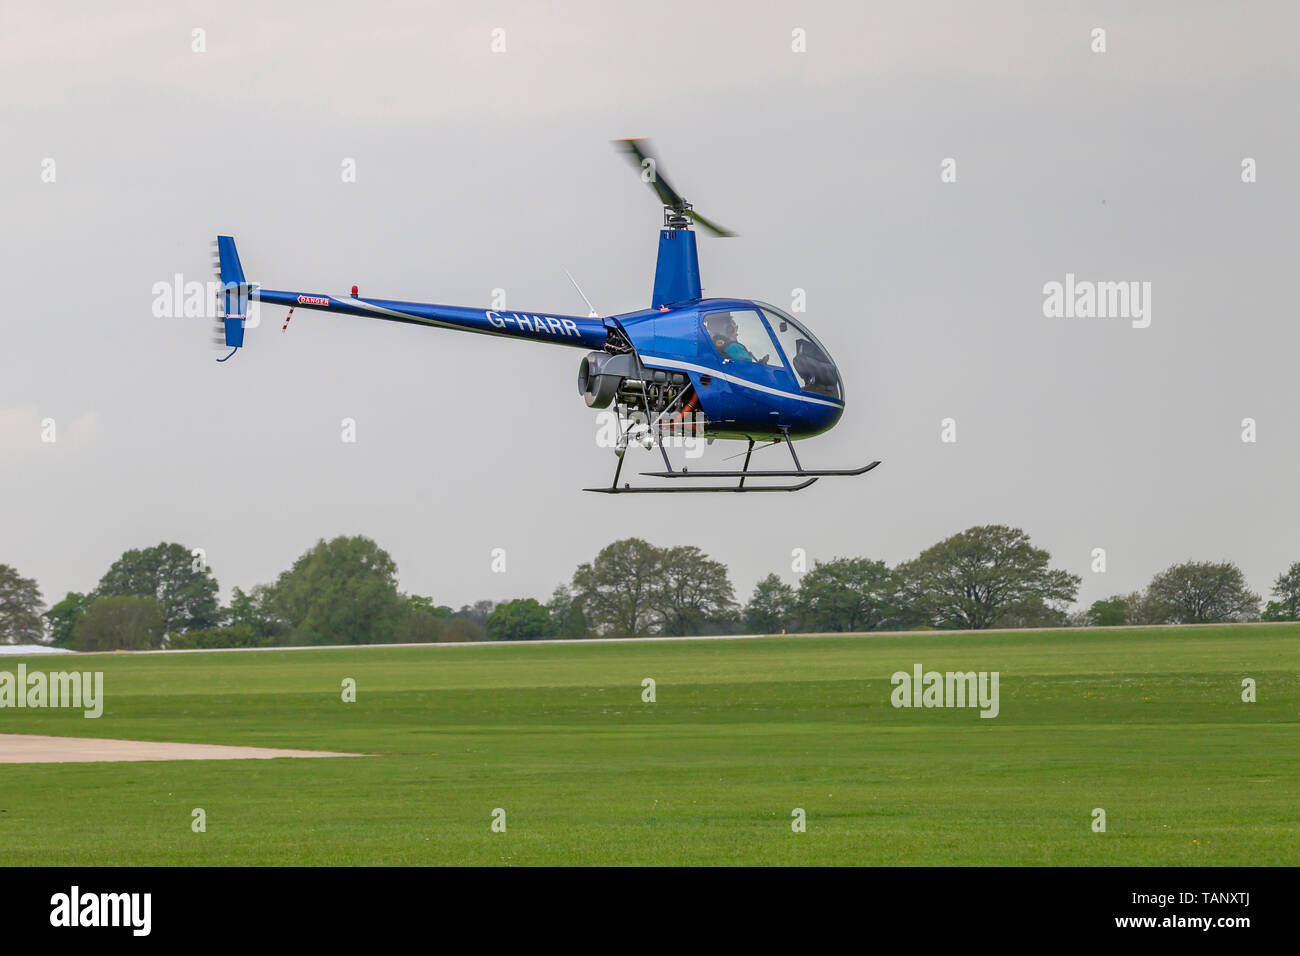 Helicopter Flying Low Stock Photos & Helicopter Flying Low